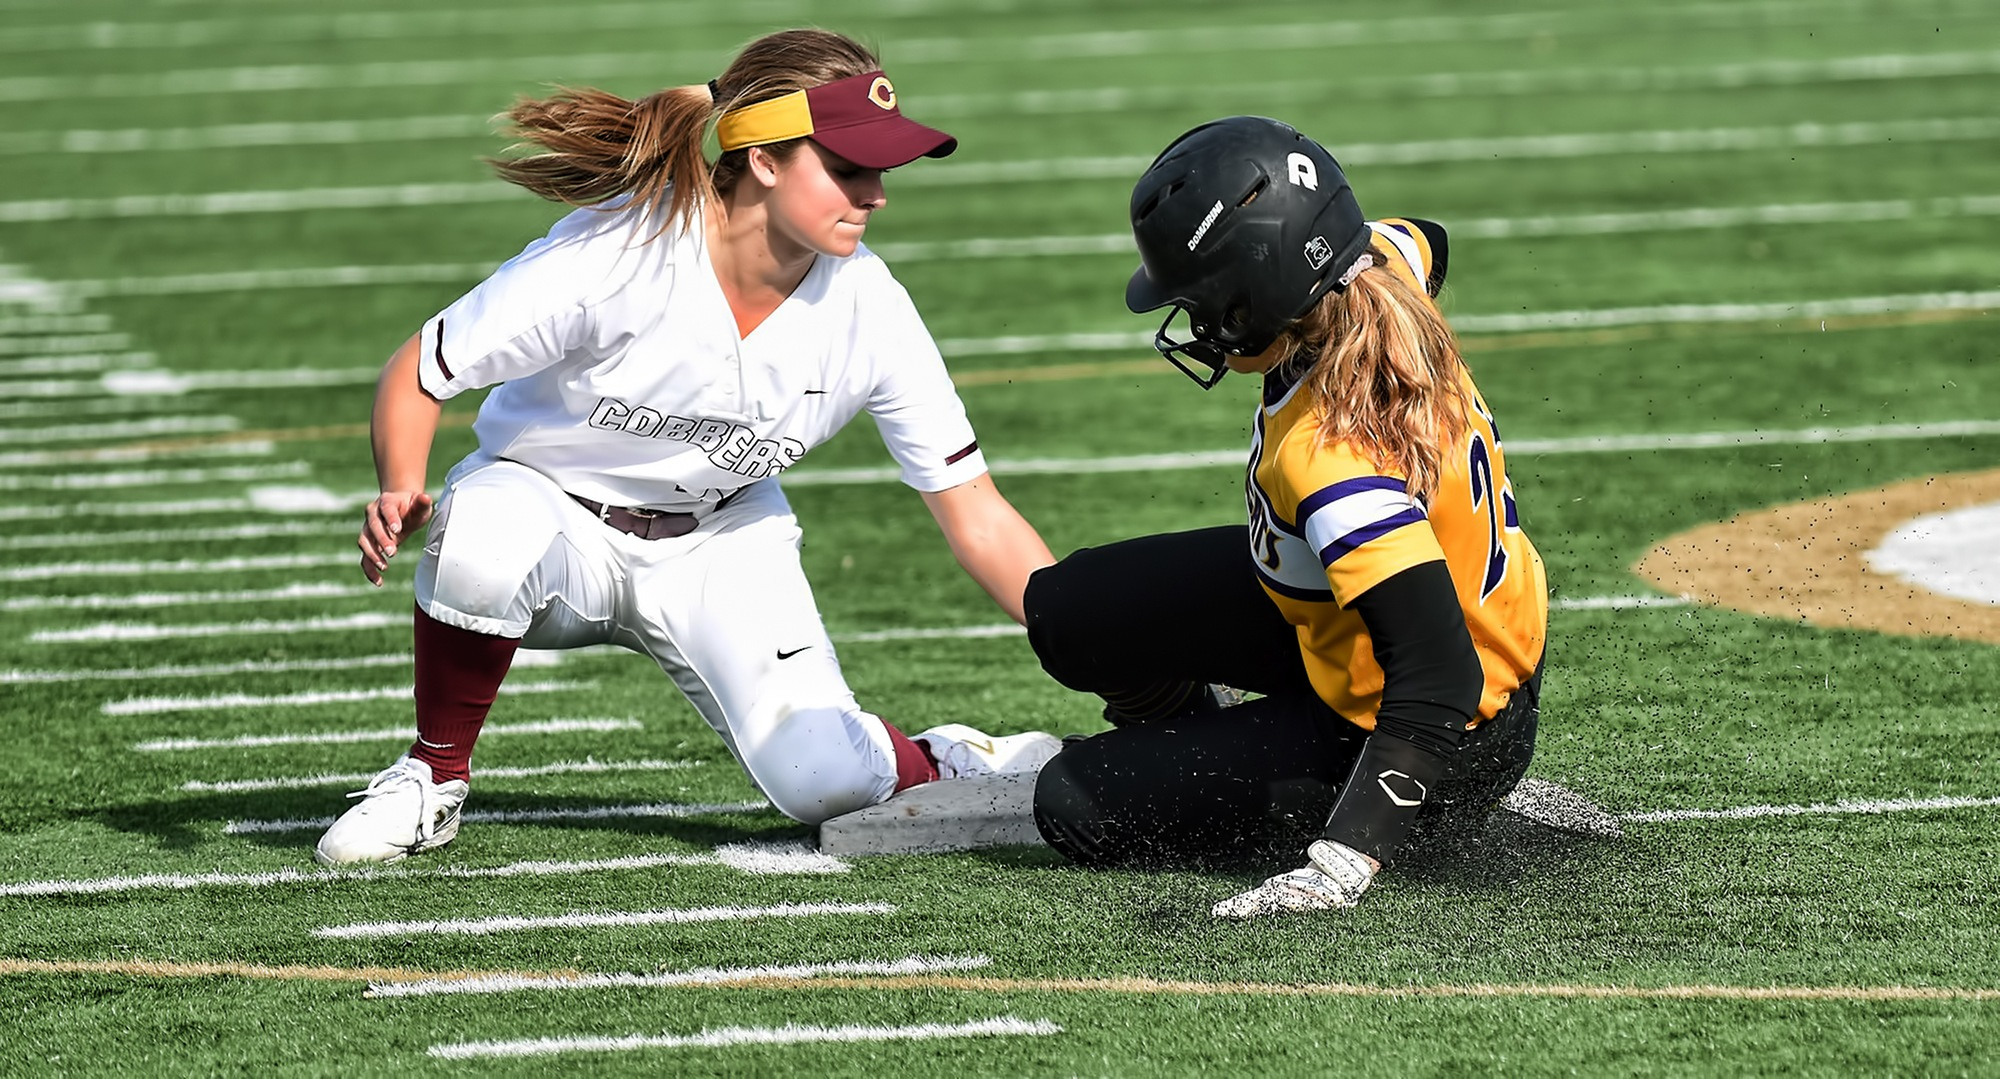 Freshman shortstop Maria Pake plants the tag on a would-be St. Catherine base stealer during the second game of the Cobbers' DH with the Wildcats.